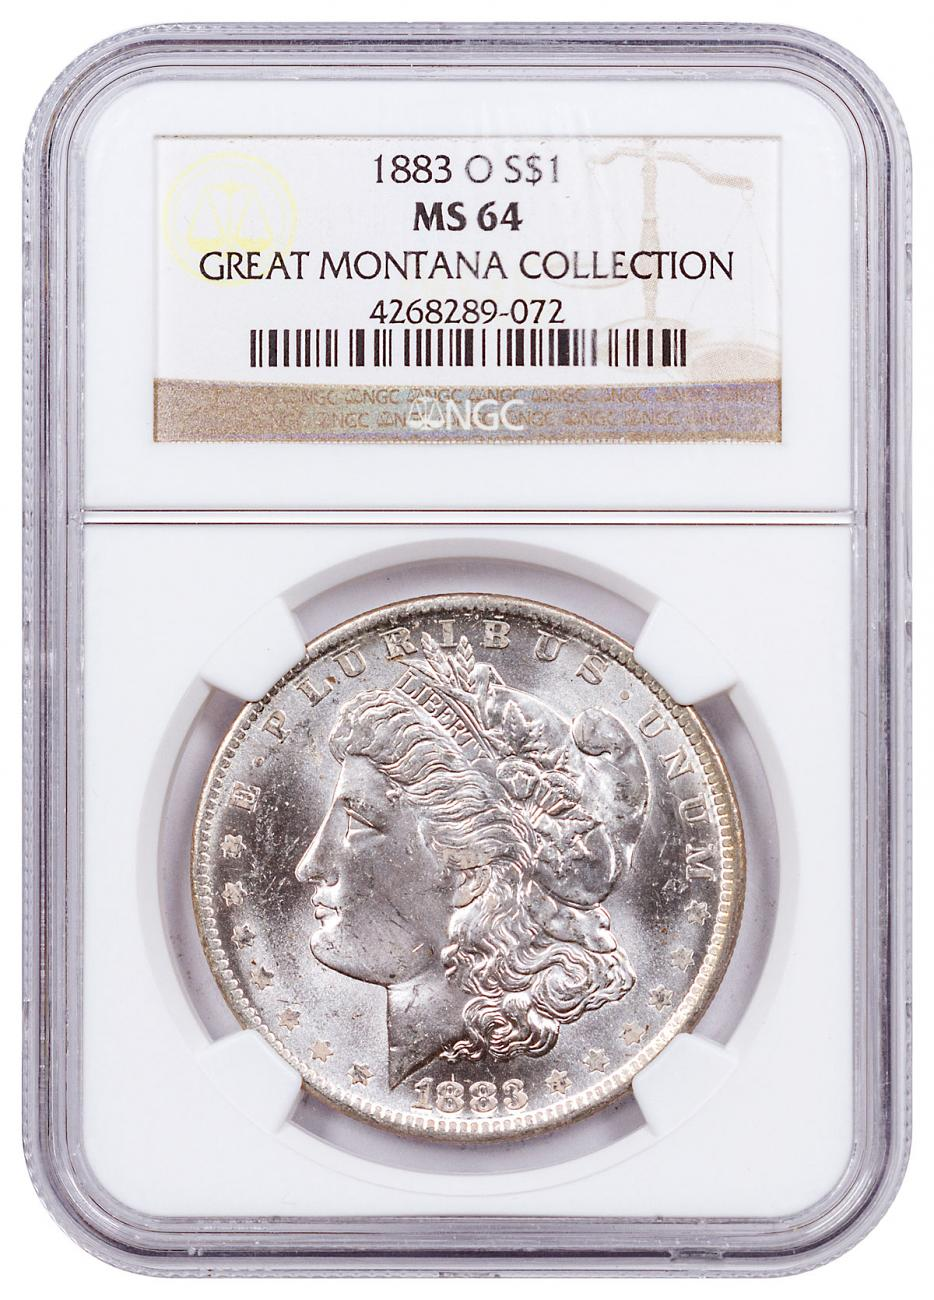 1883-O Morgan Silver Dollar From the Great Montana Collection NGC MS64 CPCR 9072